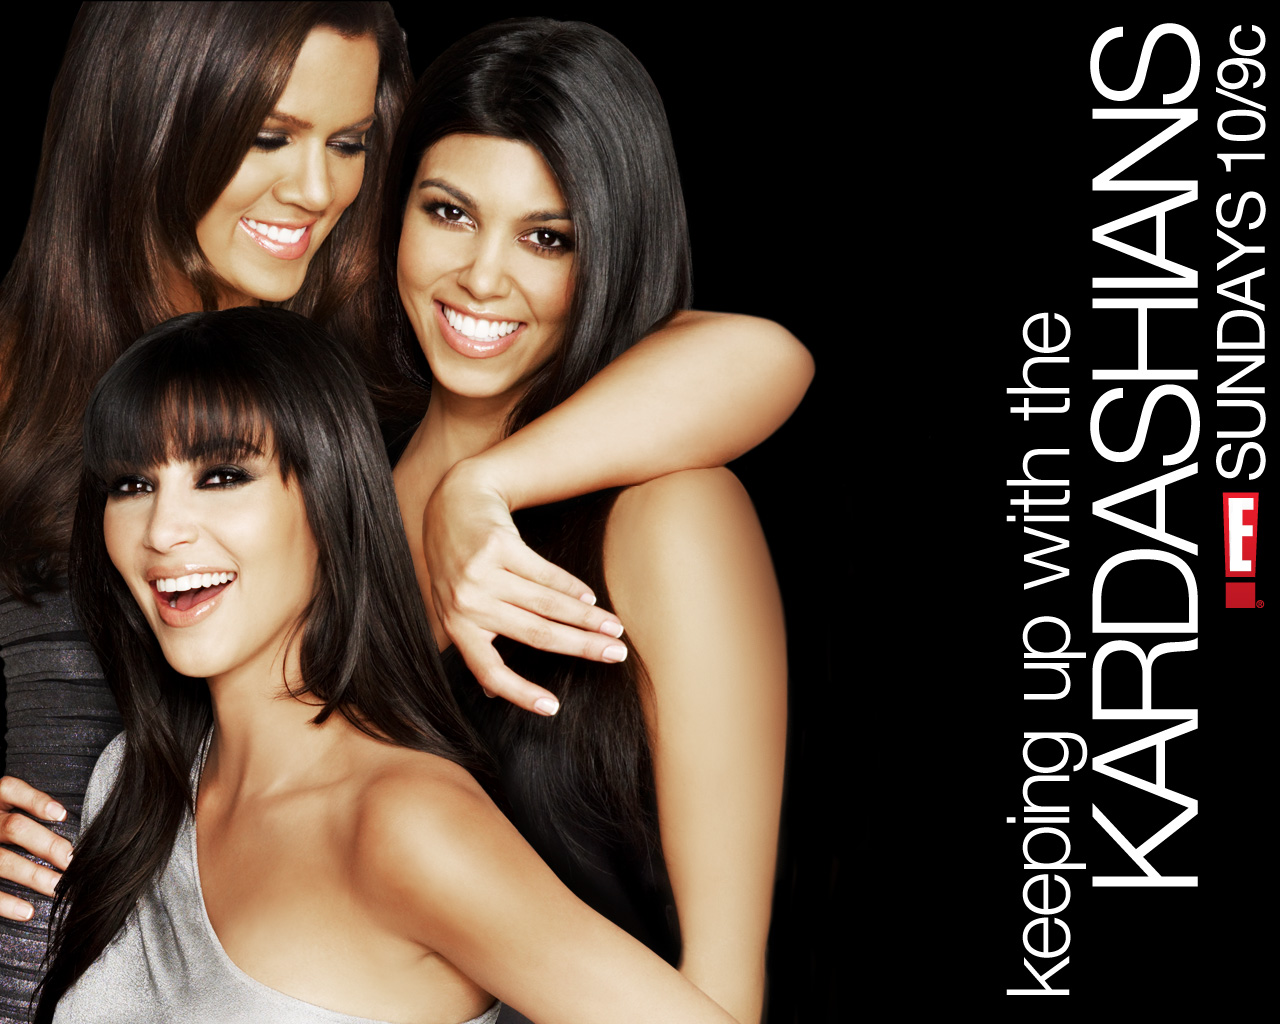 ... Keeping Up with the Kardashians Show ...